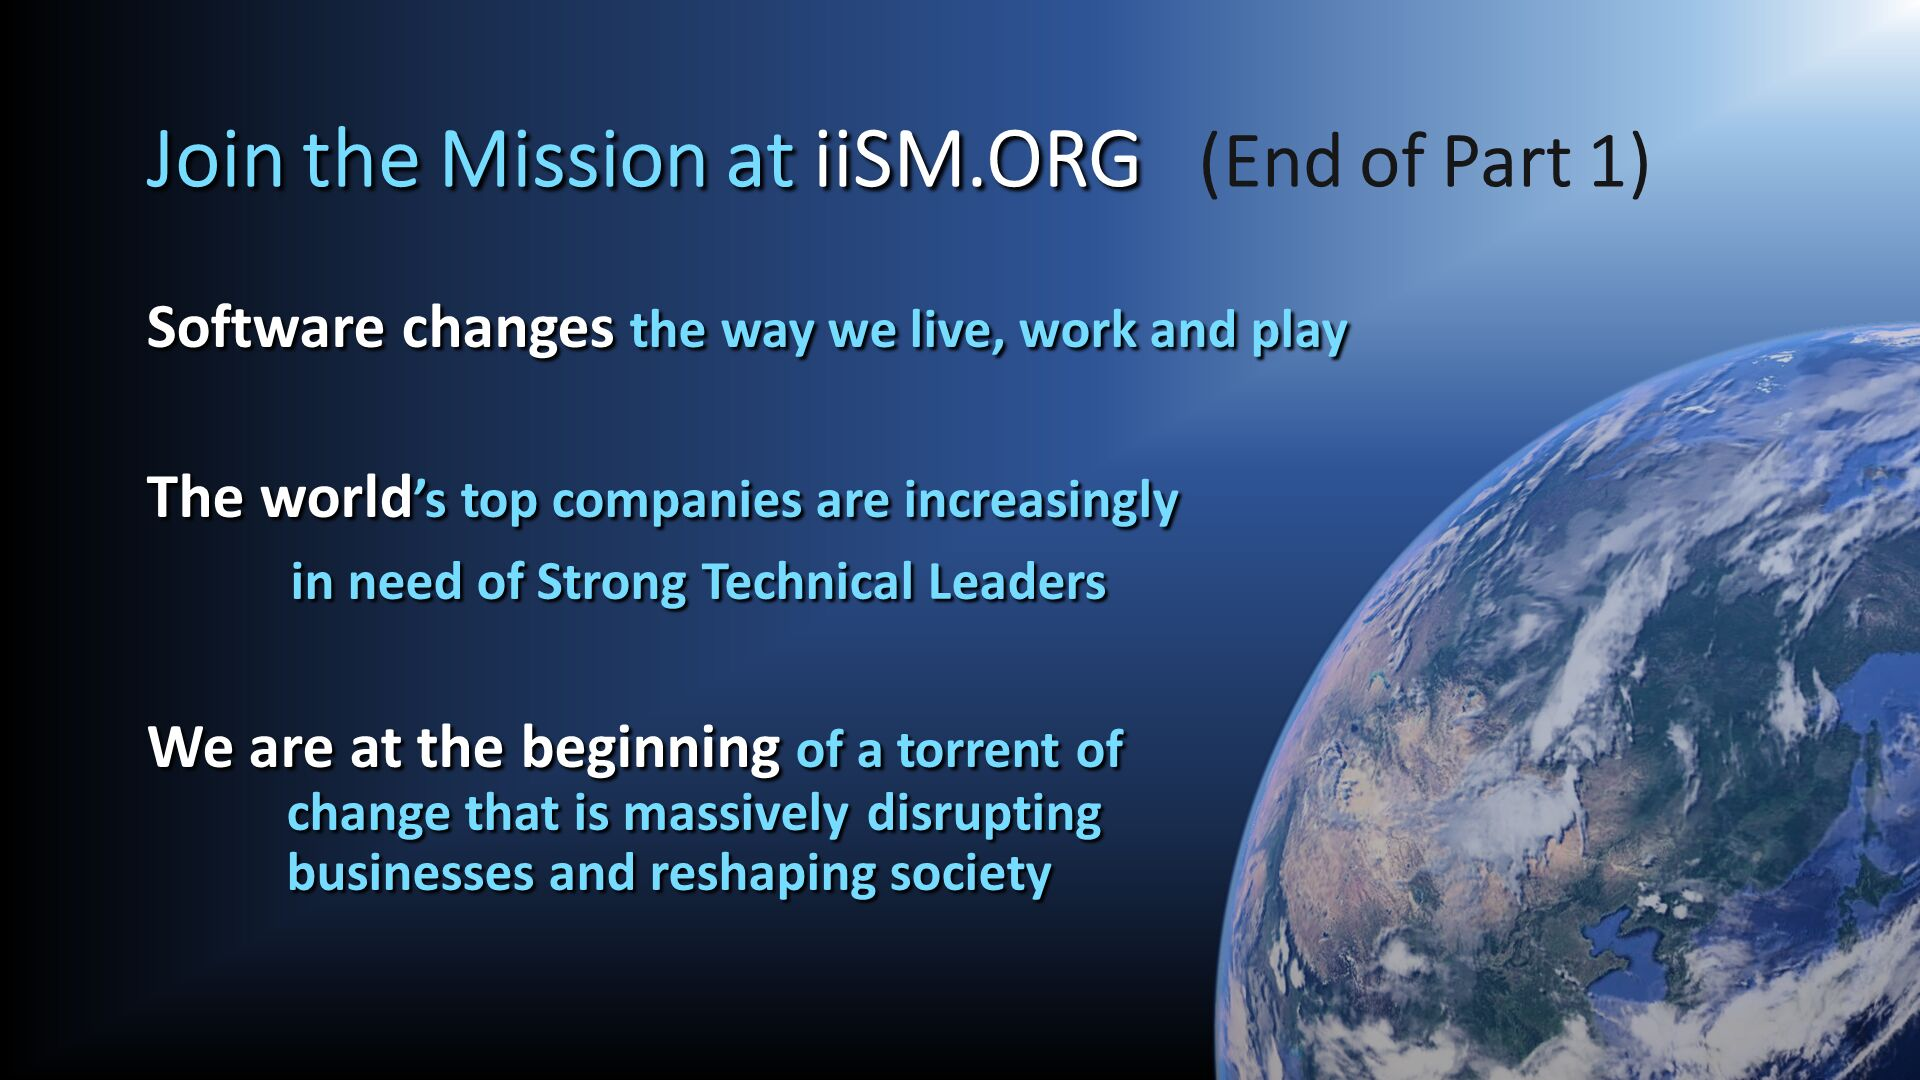 Join the Mission at iiSM.ORG   (End of Part 1). Software changes the way we live, work and play 	  The world's top companies are increasingly 	in need of Strong Technical Leaders  We are at the beginning of a torrent of            change that is massively	disrupting            businesses and reshaping society.